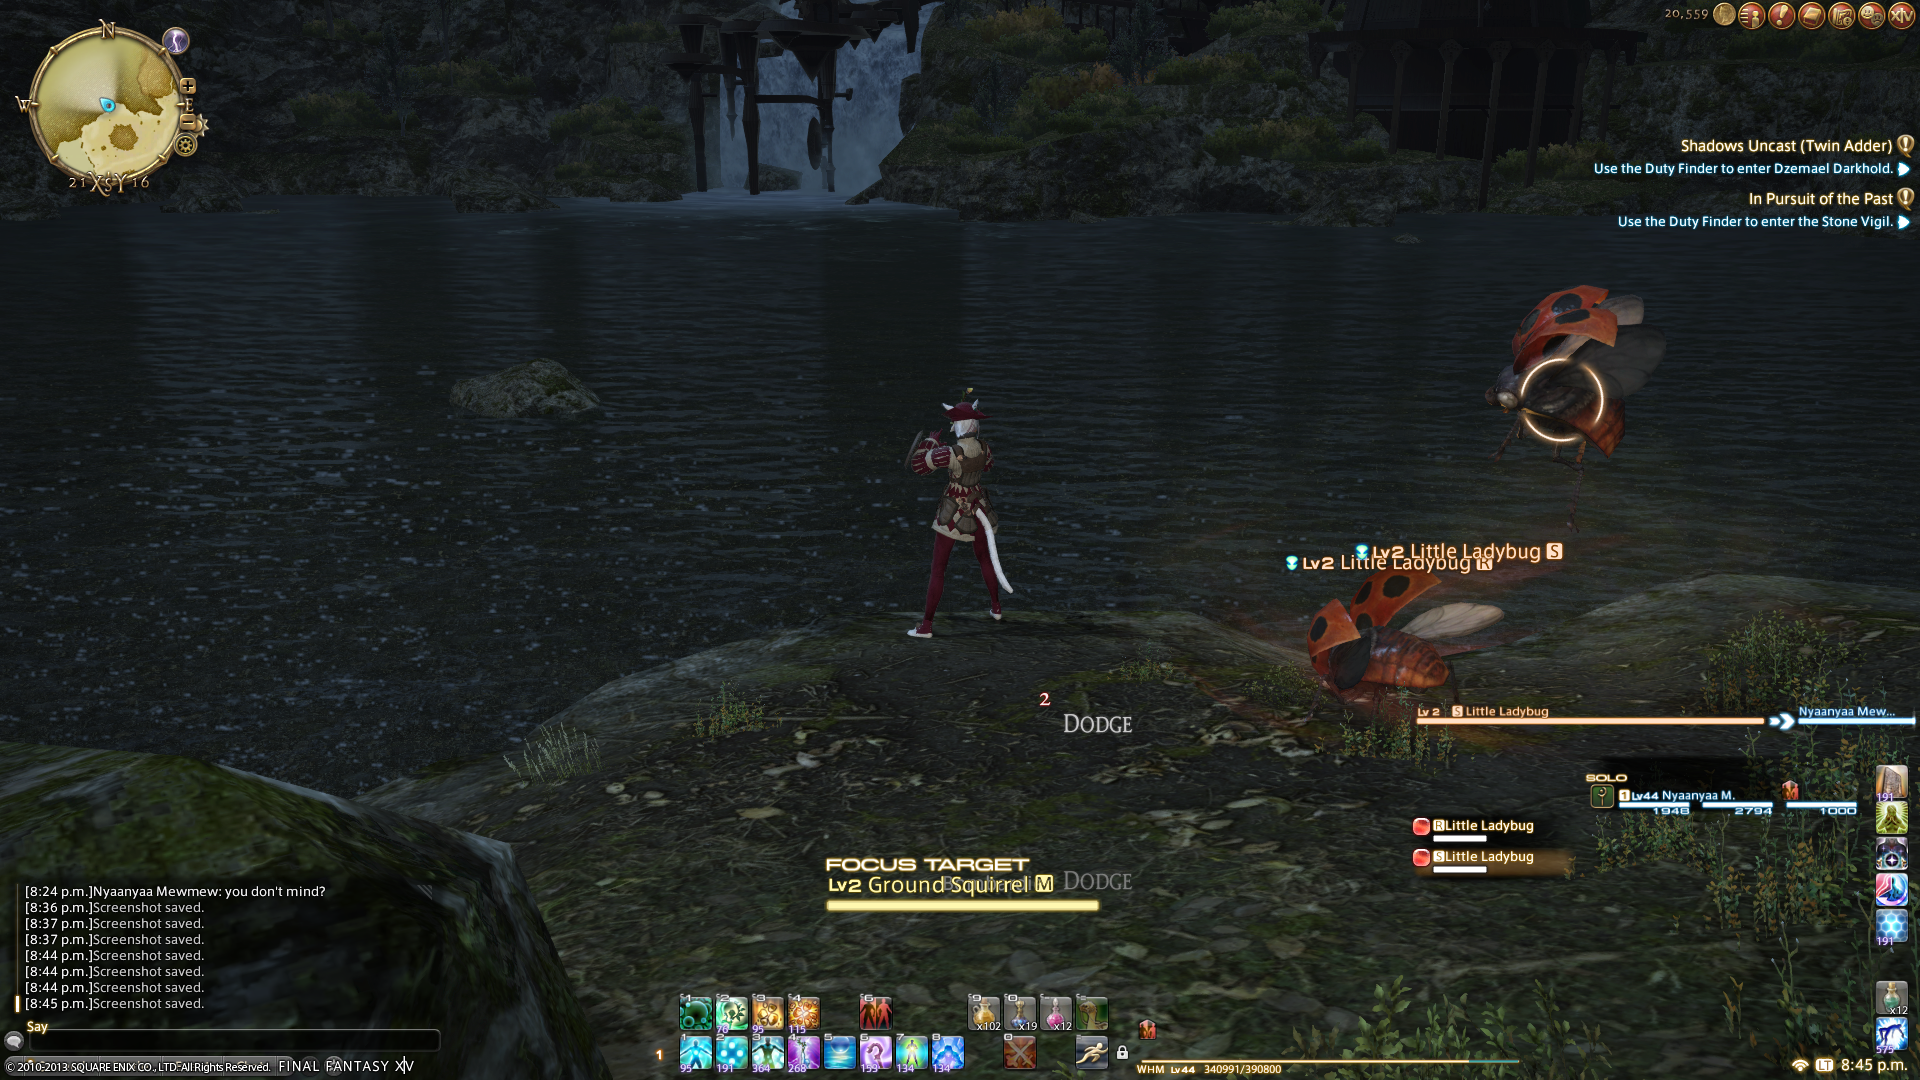 nyaanyaa_midgardsormr ffxiv make petbar command toggle your visibility pictures remember anyone post know